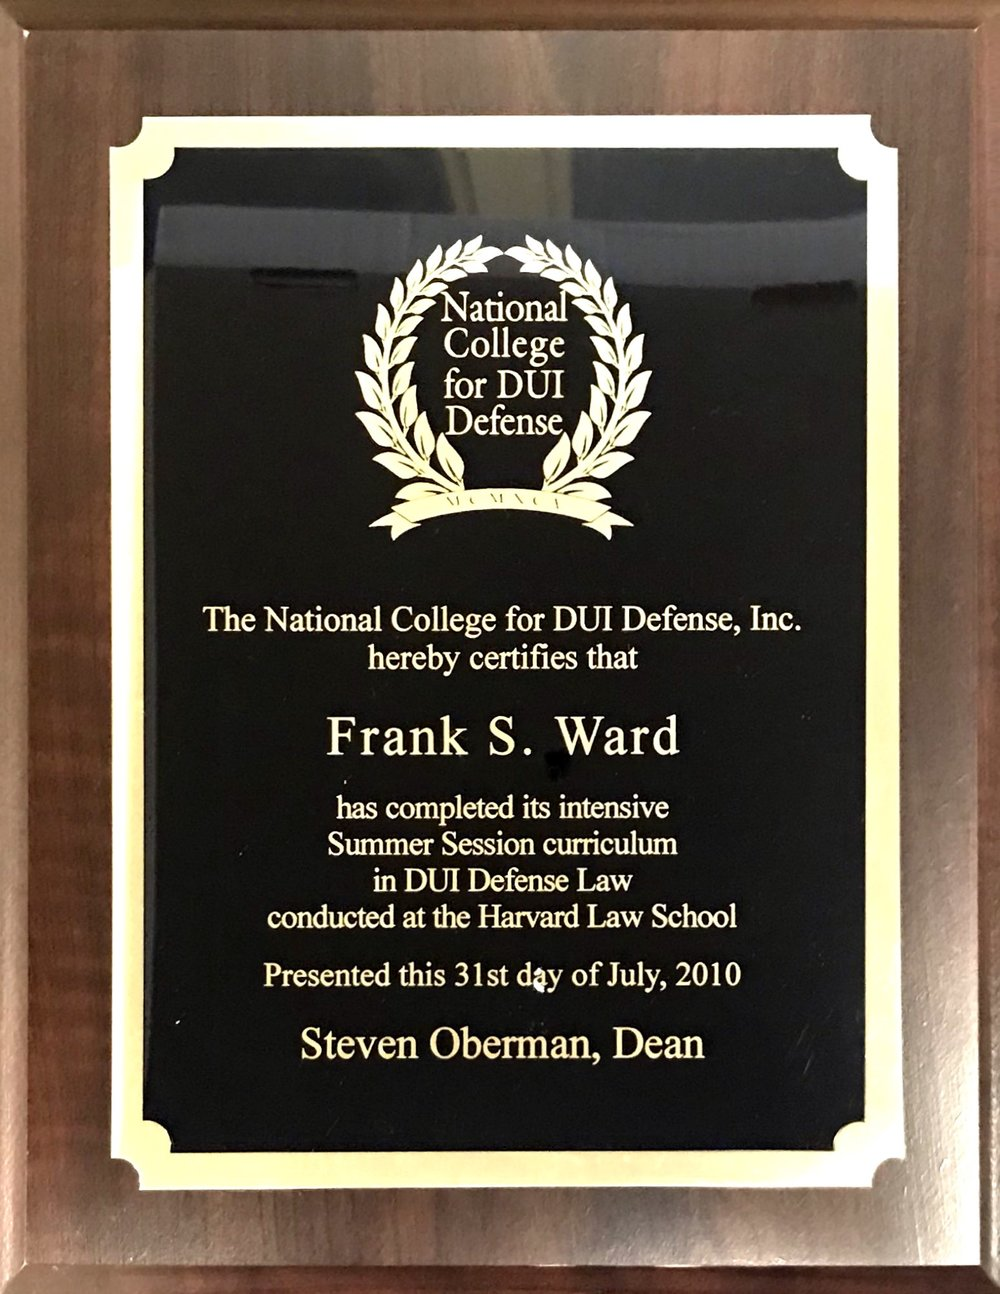 national-college-for-DUI-defense-2010